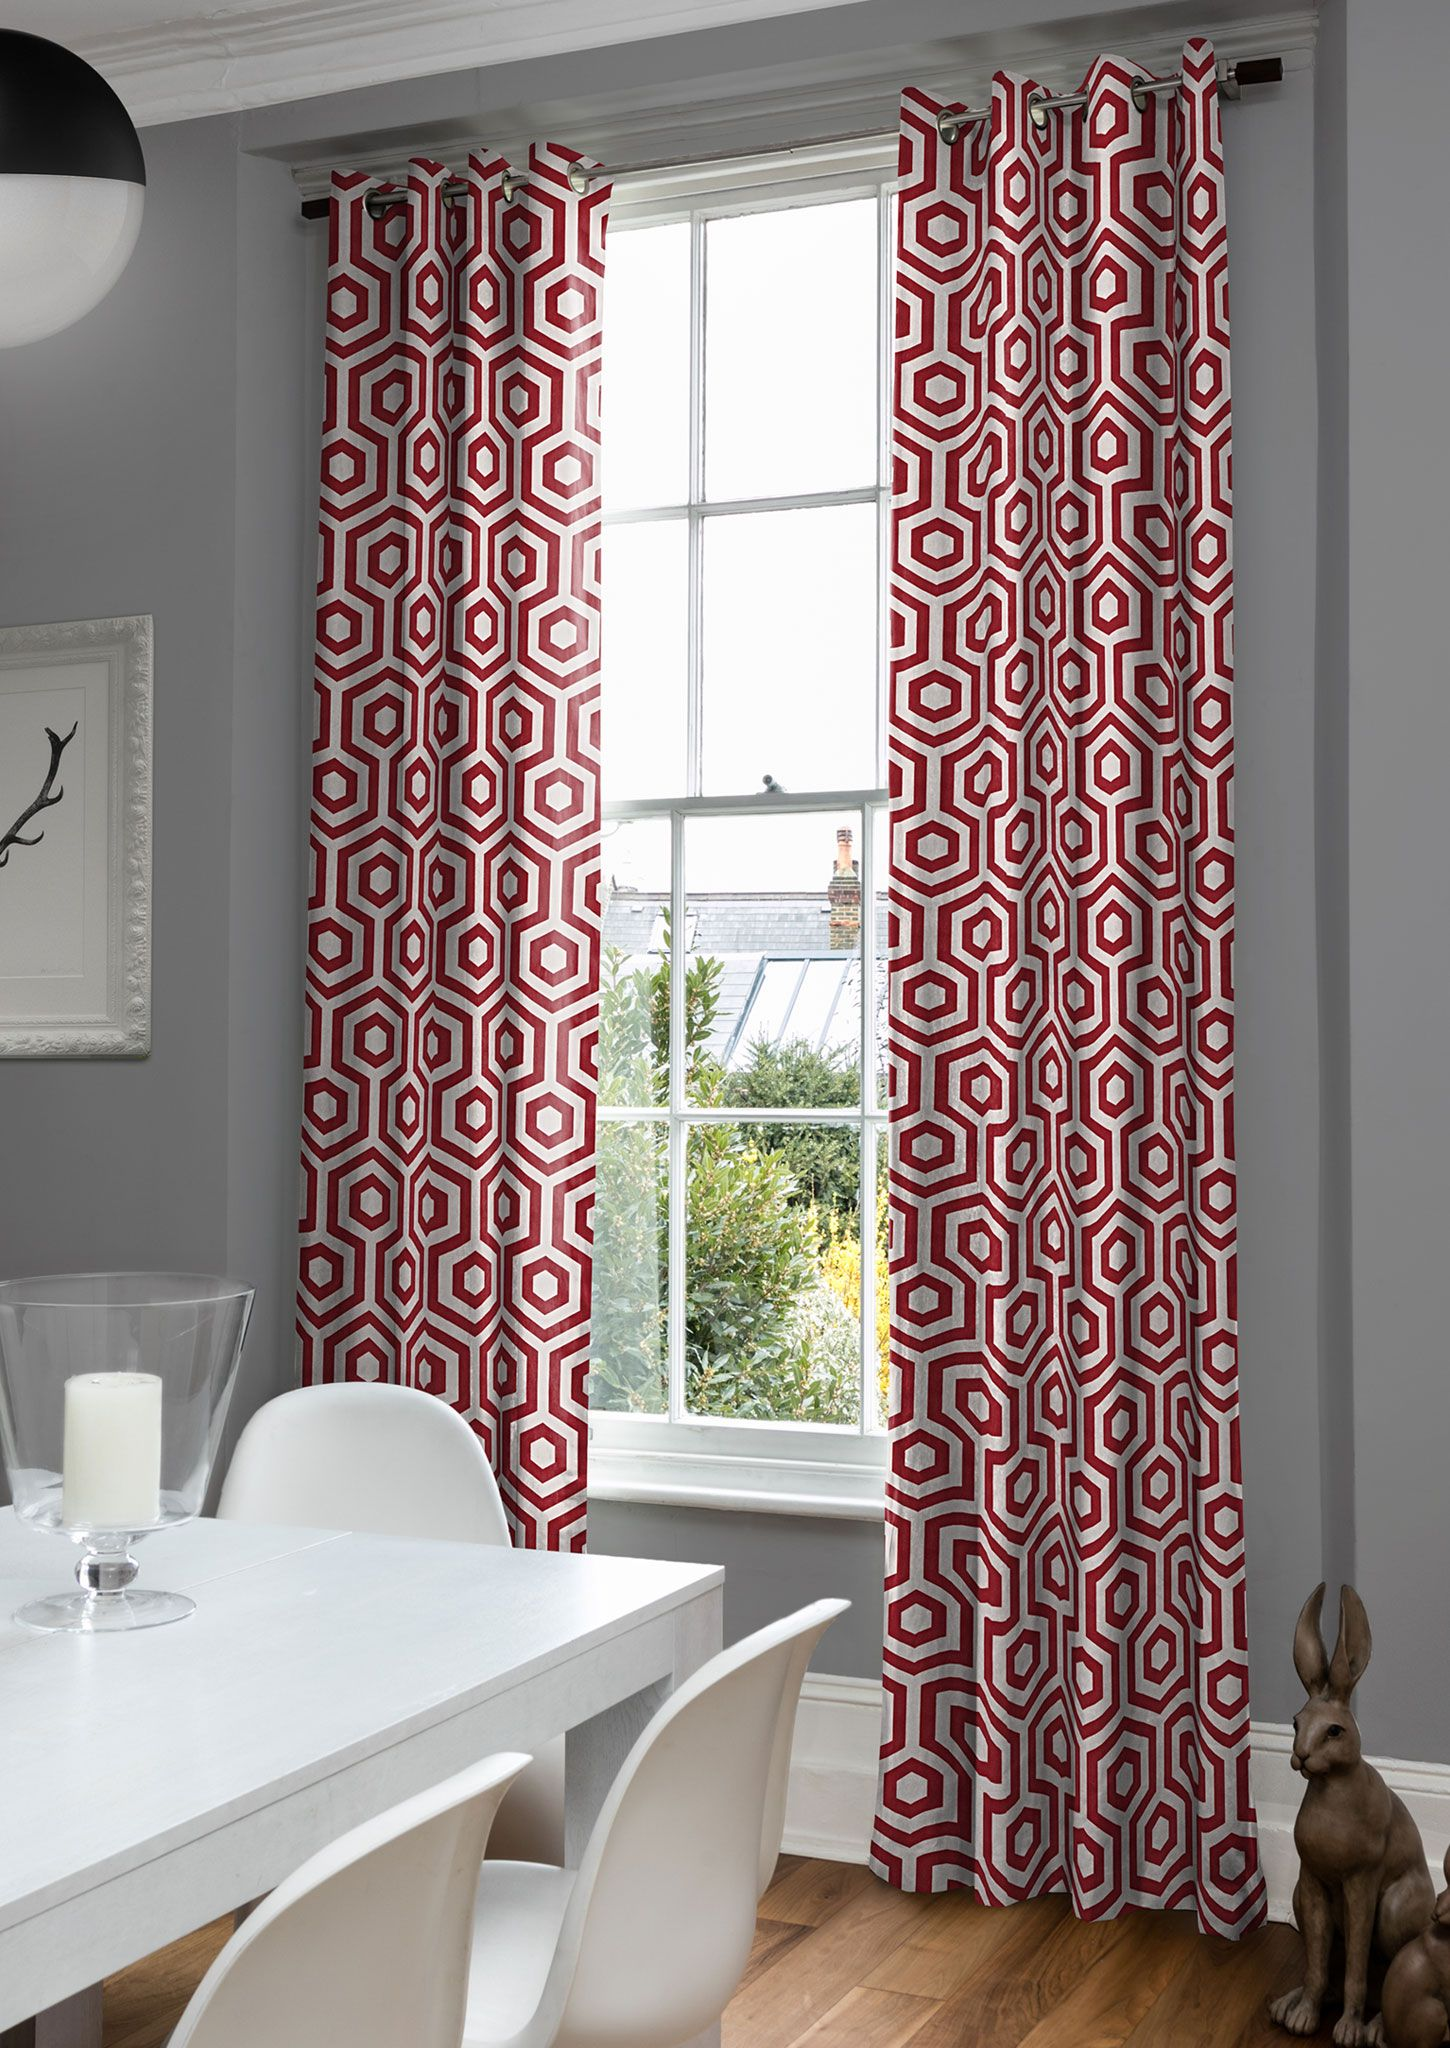 Moderne Pendant Geometric Curtains In Red And White With A Eye Catching Honeycomb Pat Curtains Living Room Red And White Curtains Pattern Curtains Living Room